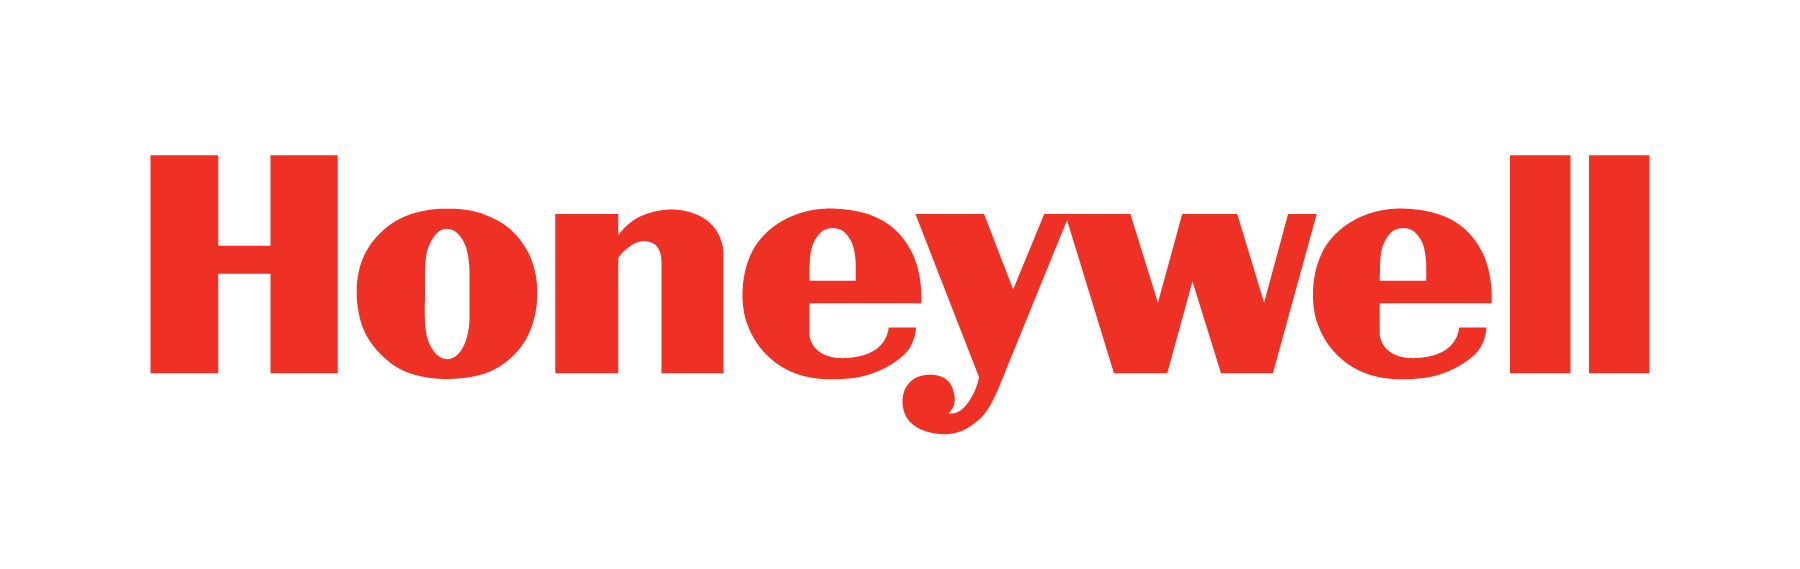 Honeywell Logo RGB Red